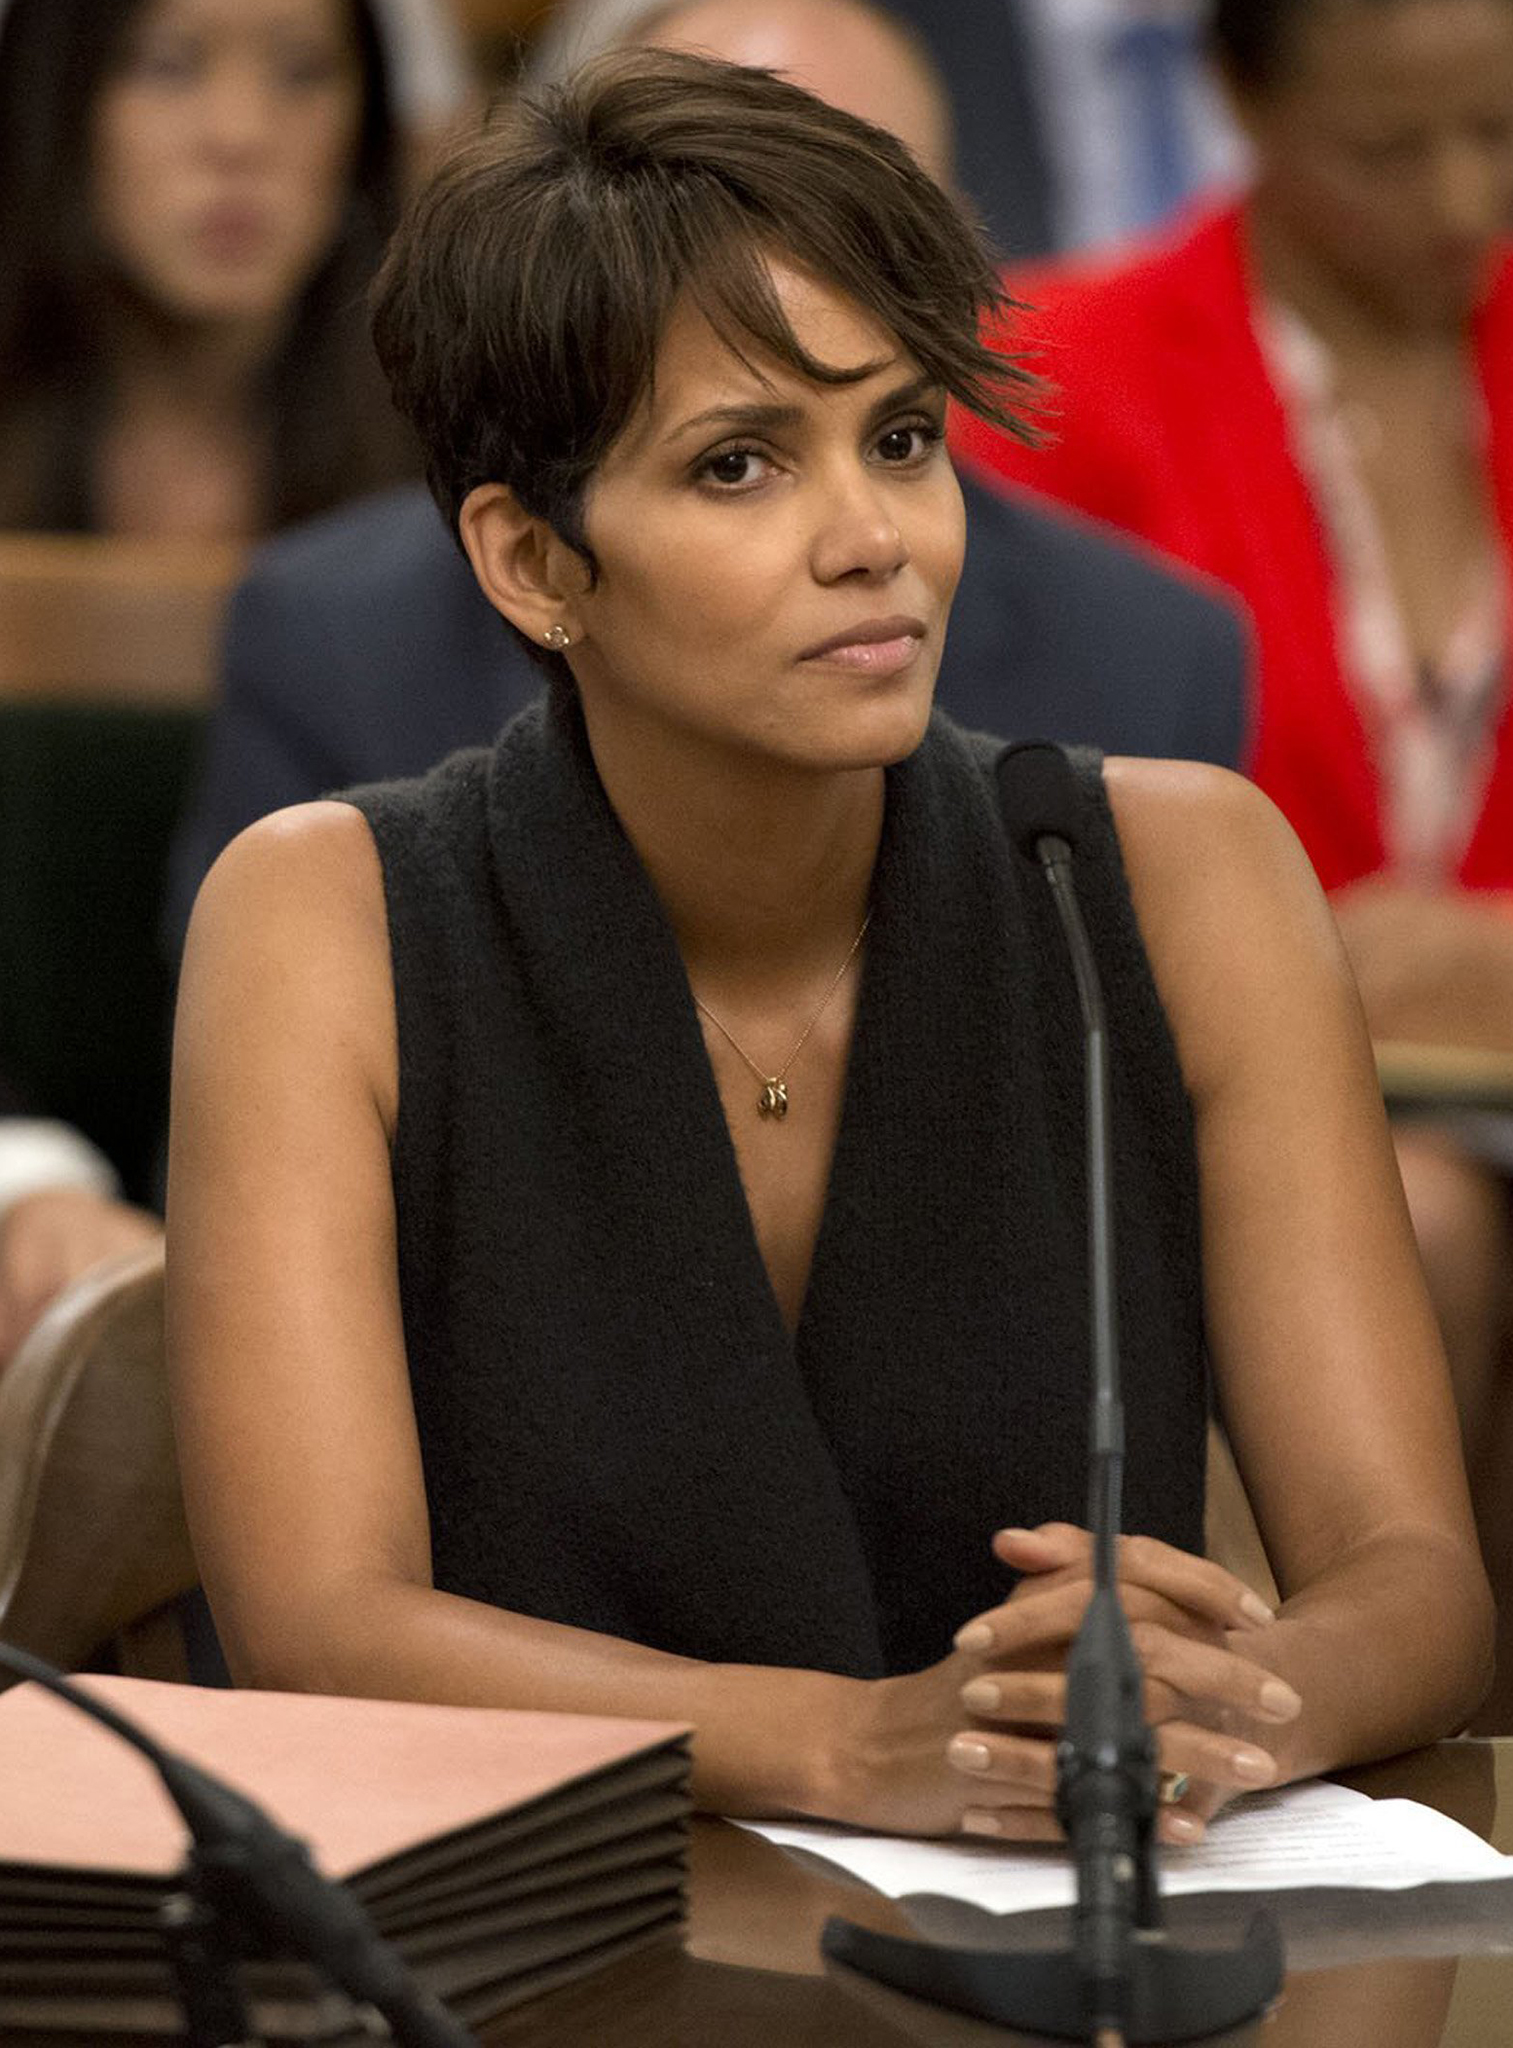 Halle Berry testifying in support of the bill in June. (Getty Images)